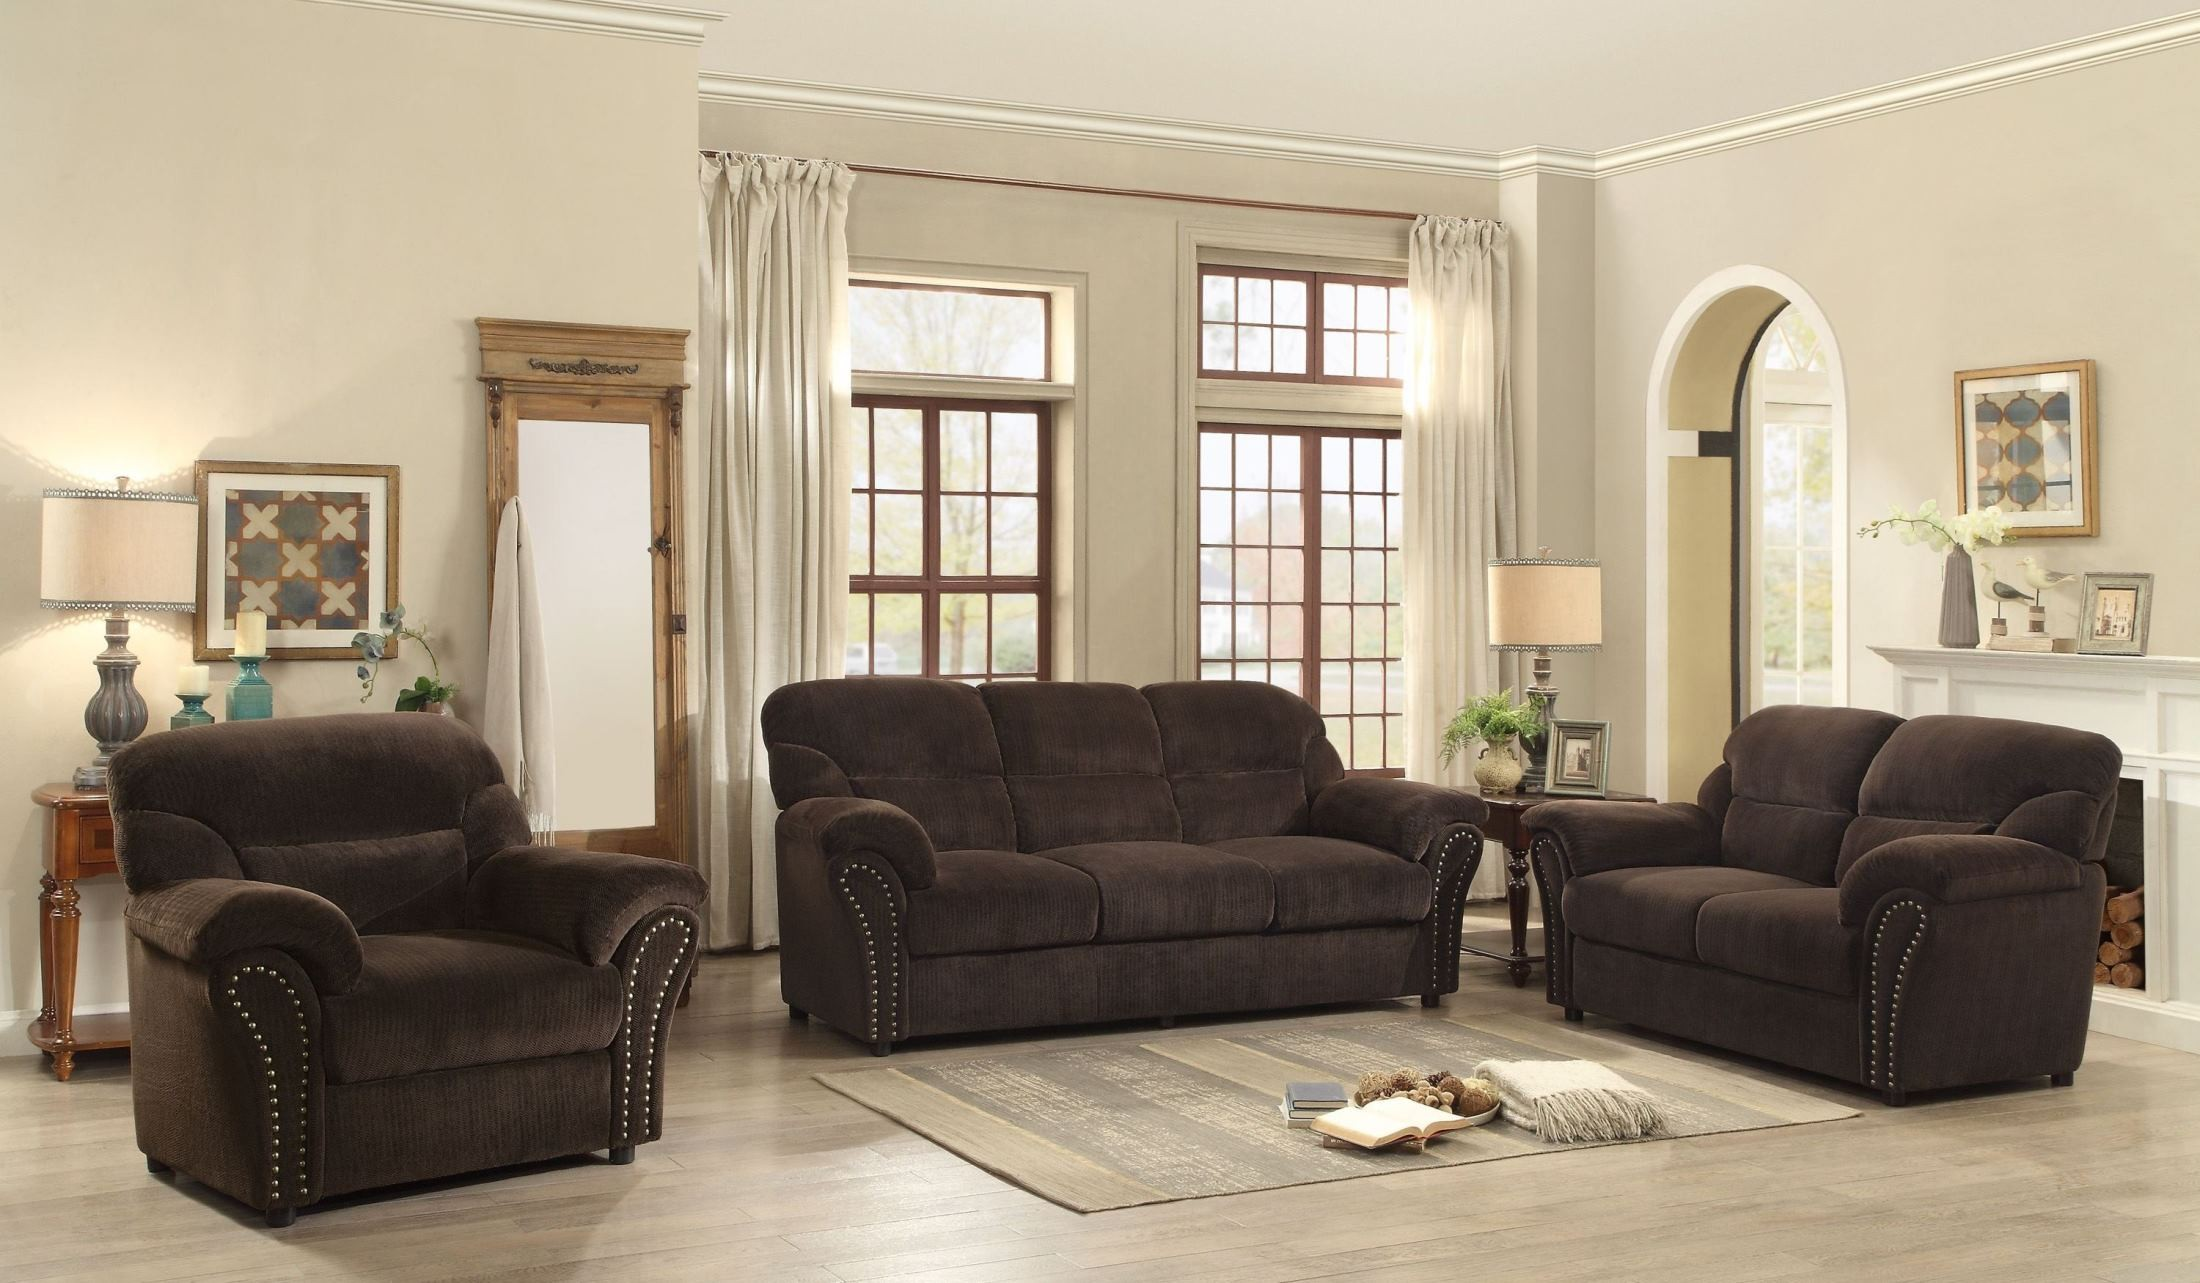 Valentina dark brown living room set from homelegance for Dark brown living room set